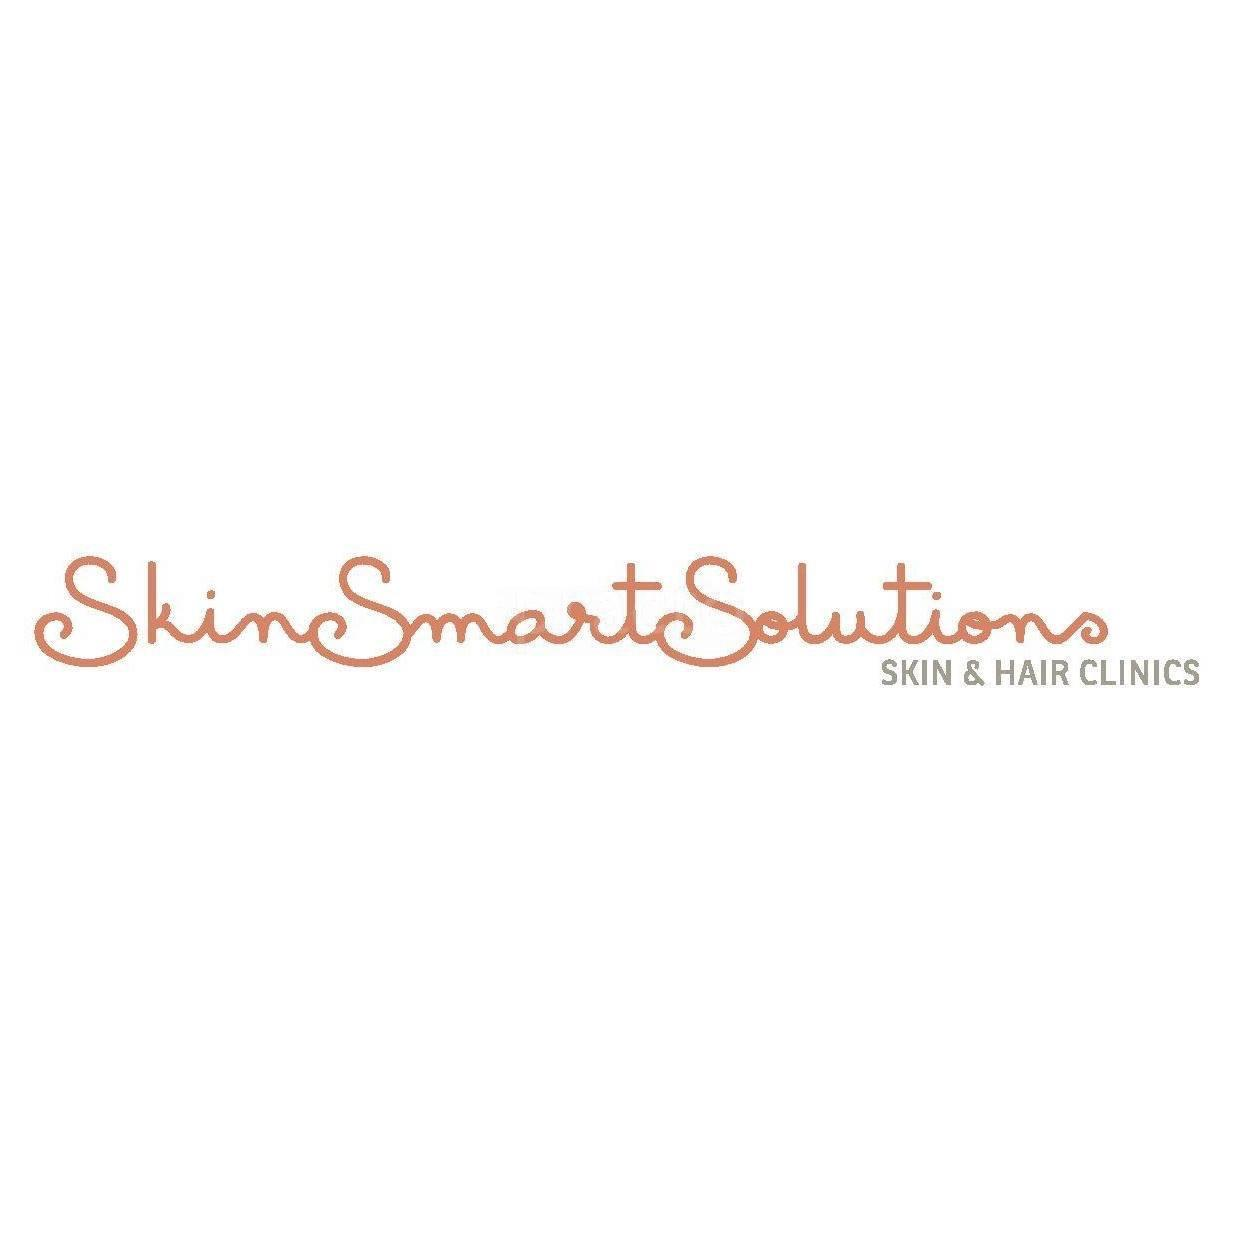 Skin Smart Solutions